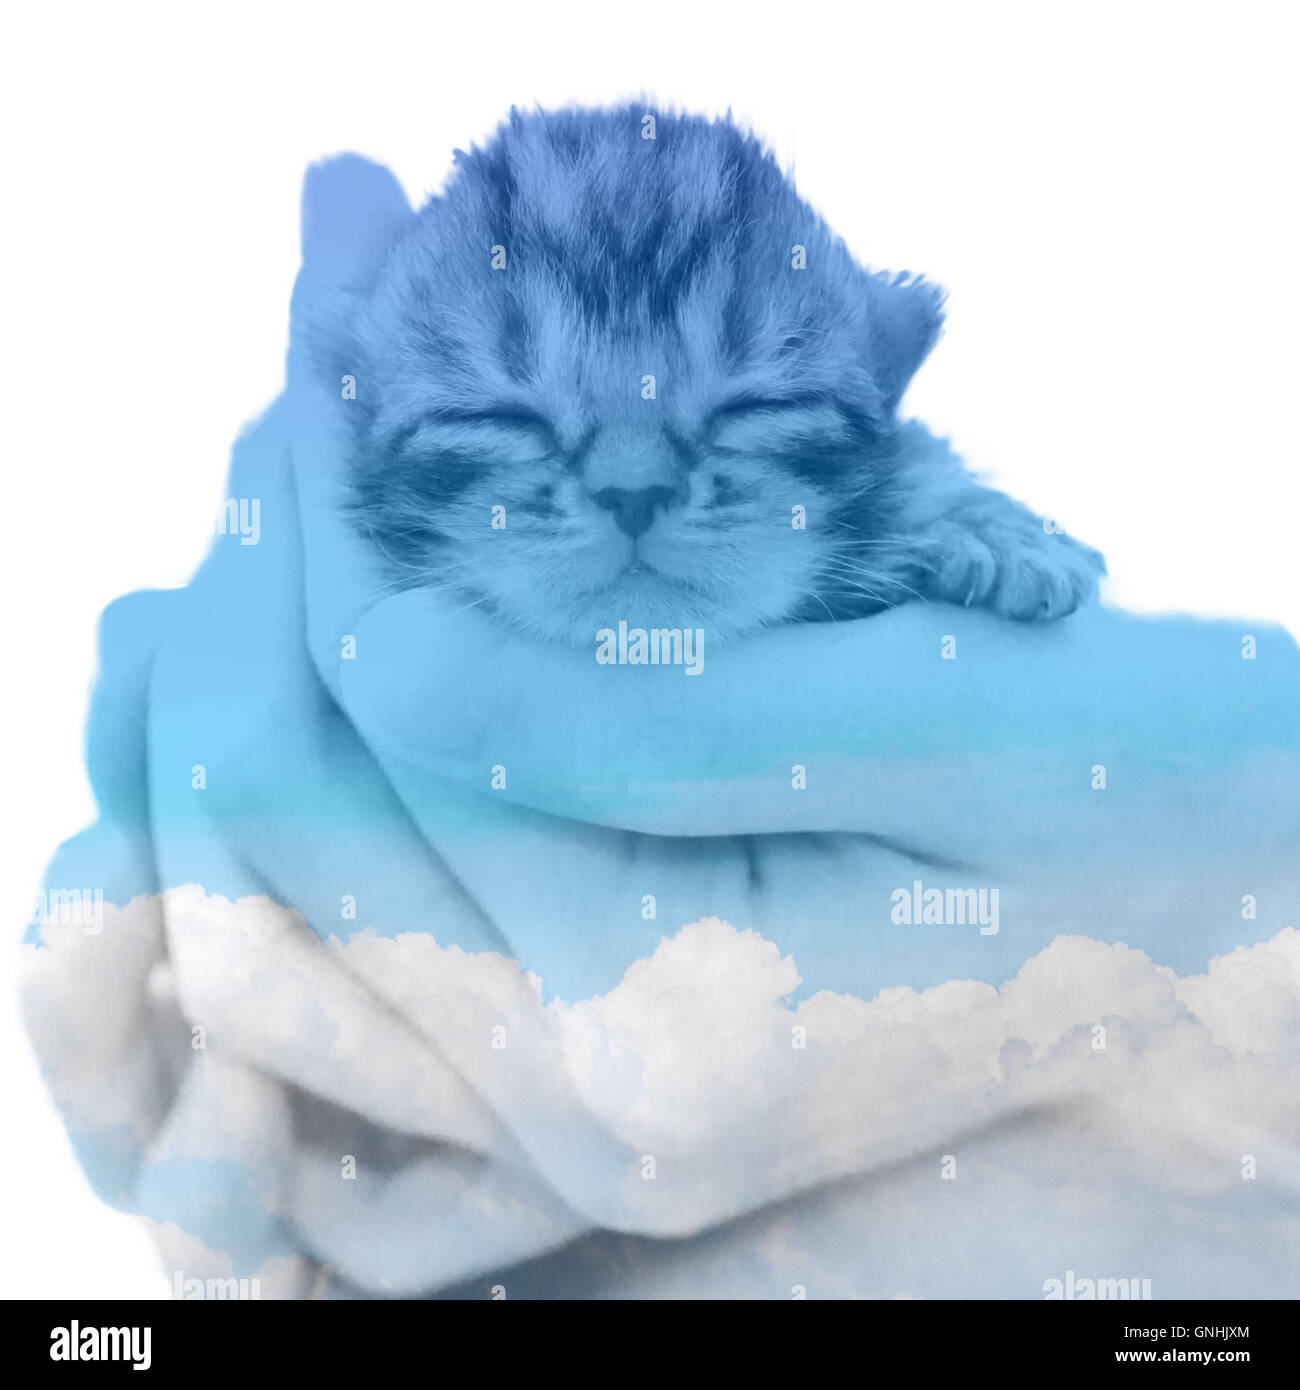 American shorthair kitten double exposure with clound in the blue sky - Stock Image